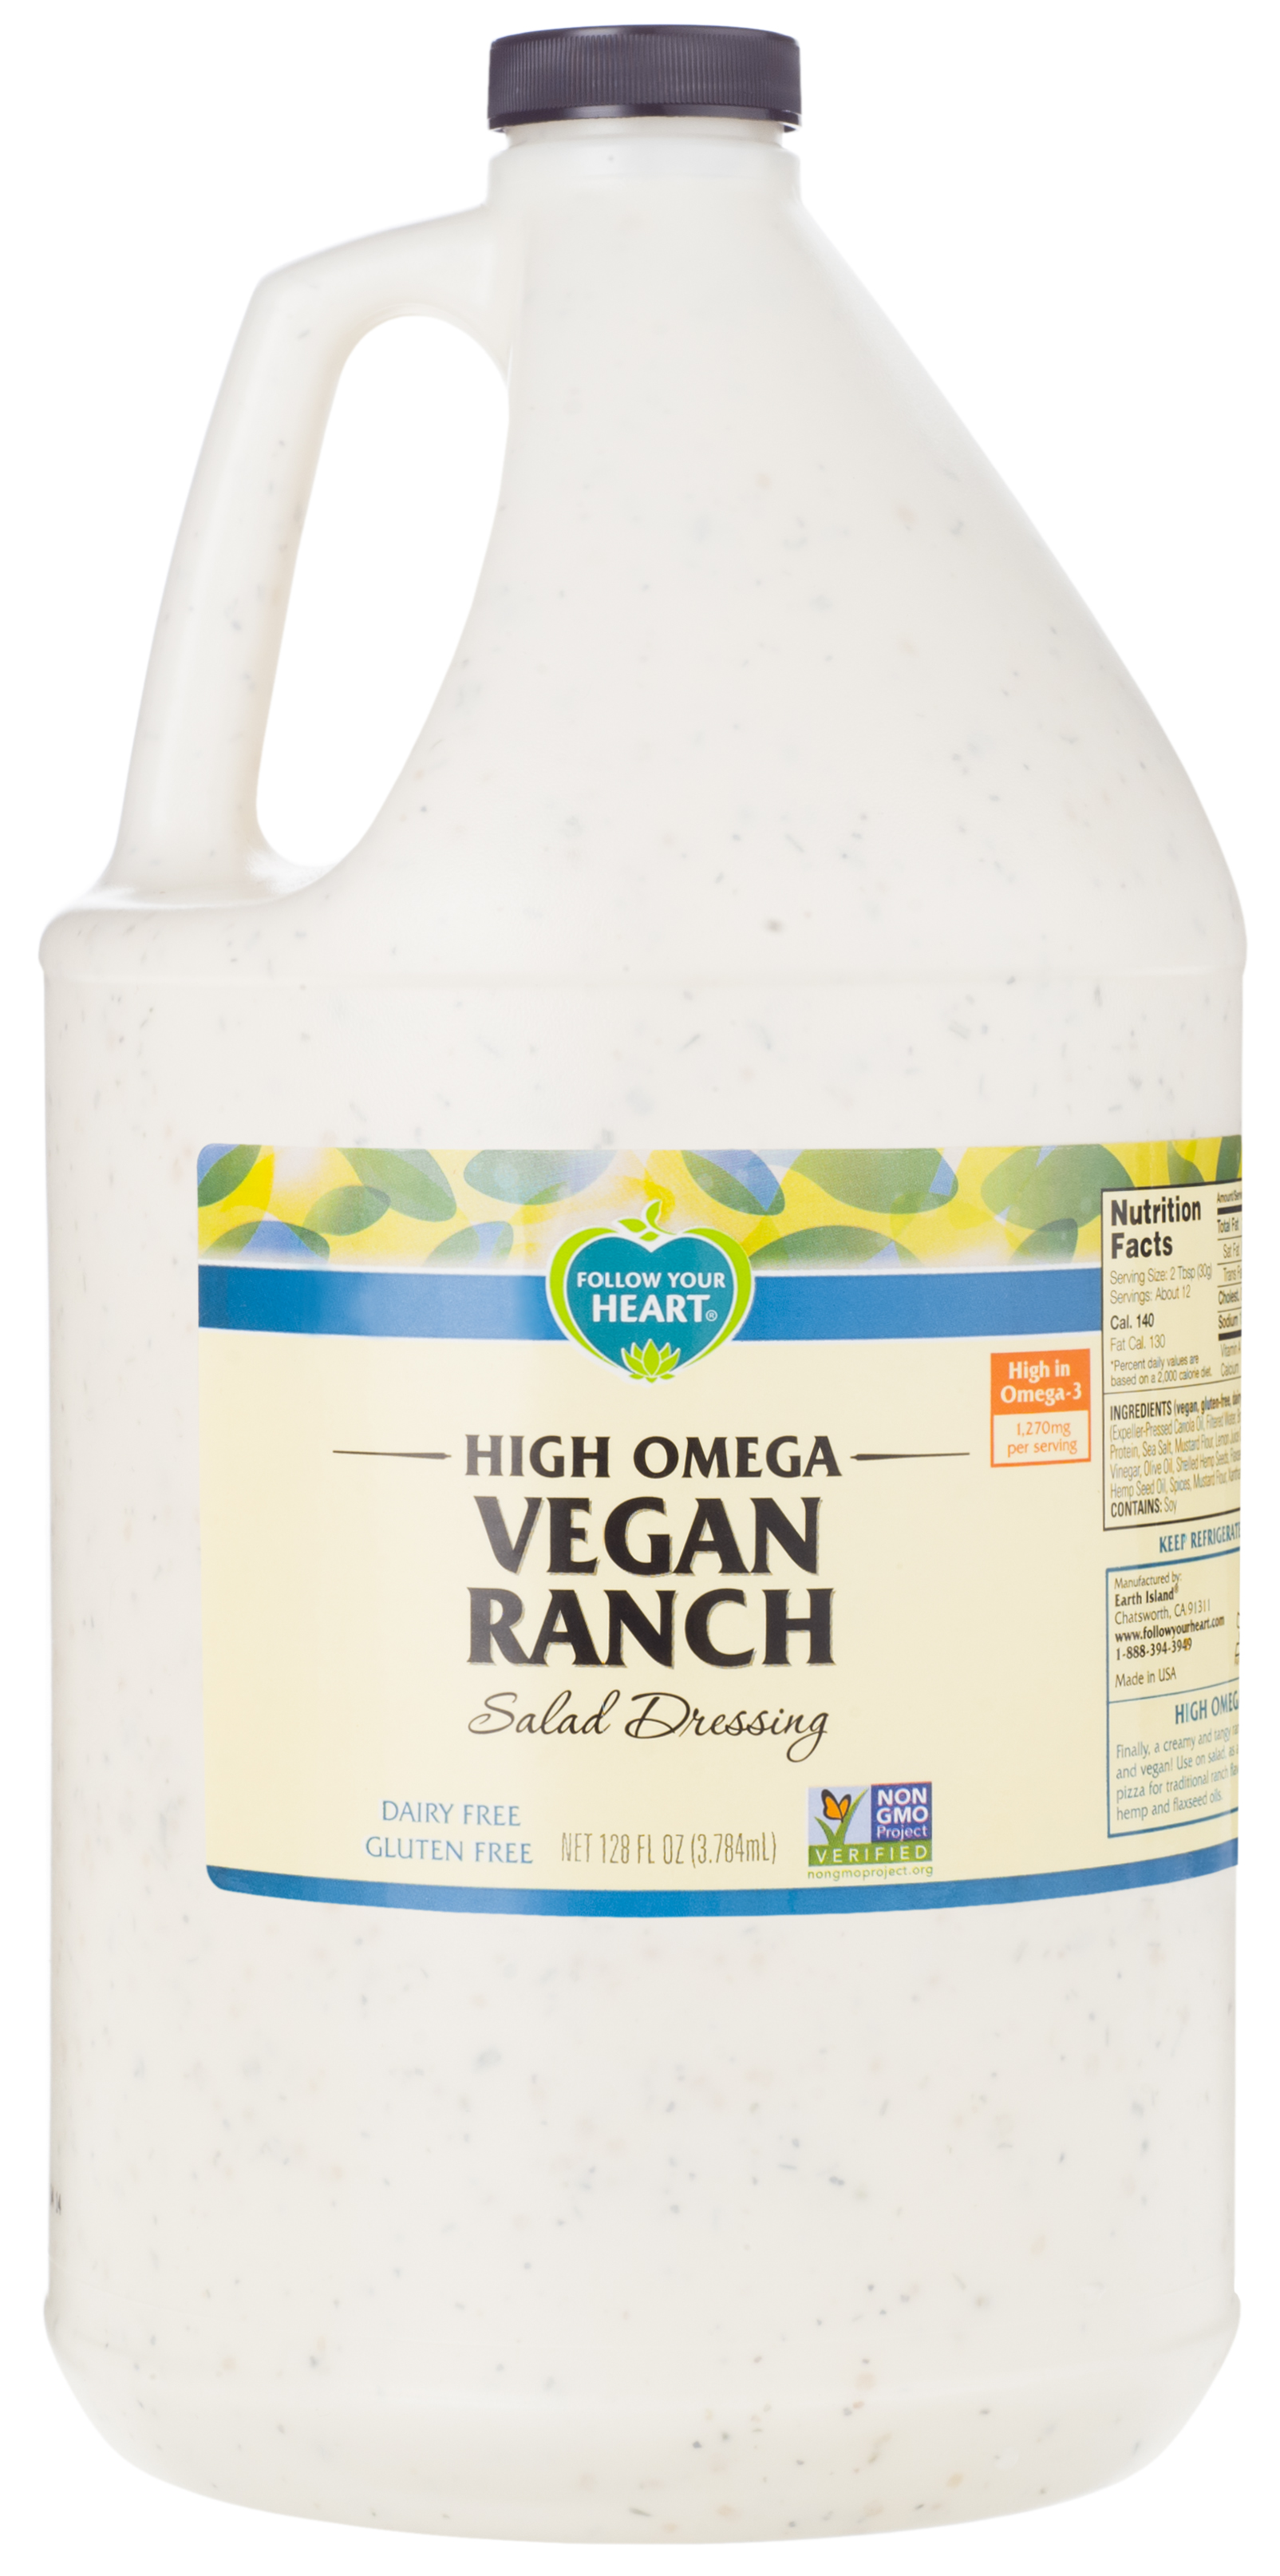 RANCH HI OMEGA VEGAN FOLLOW 1 GAL